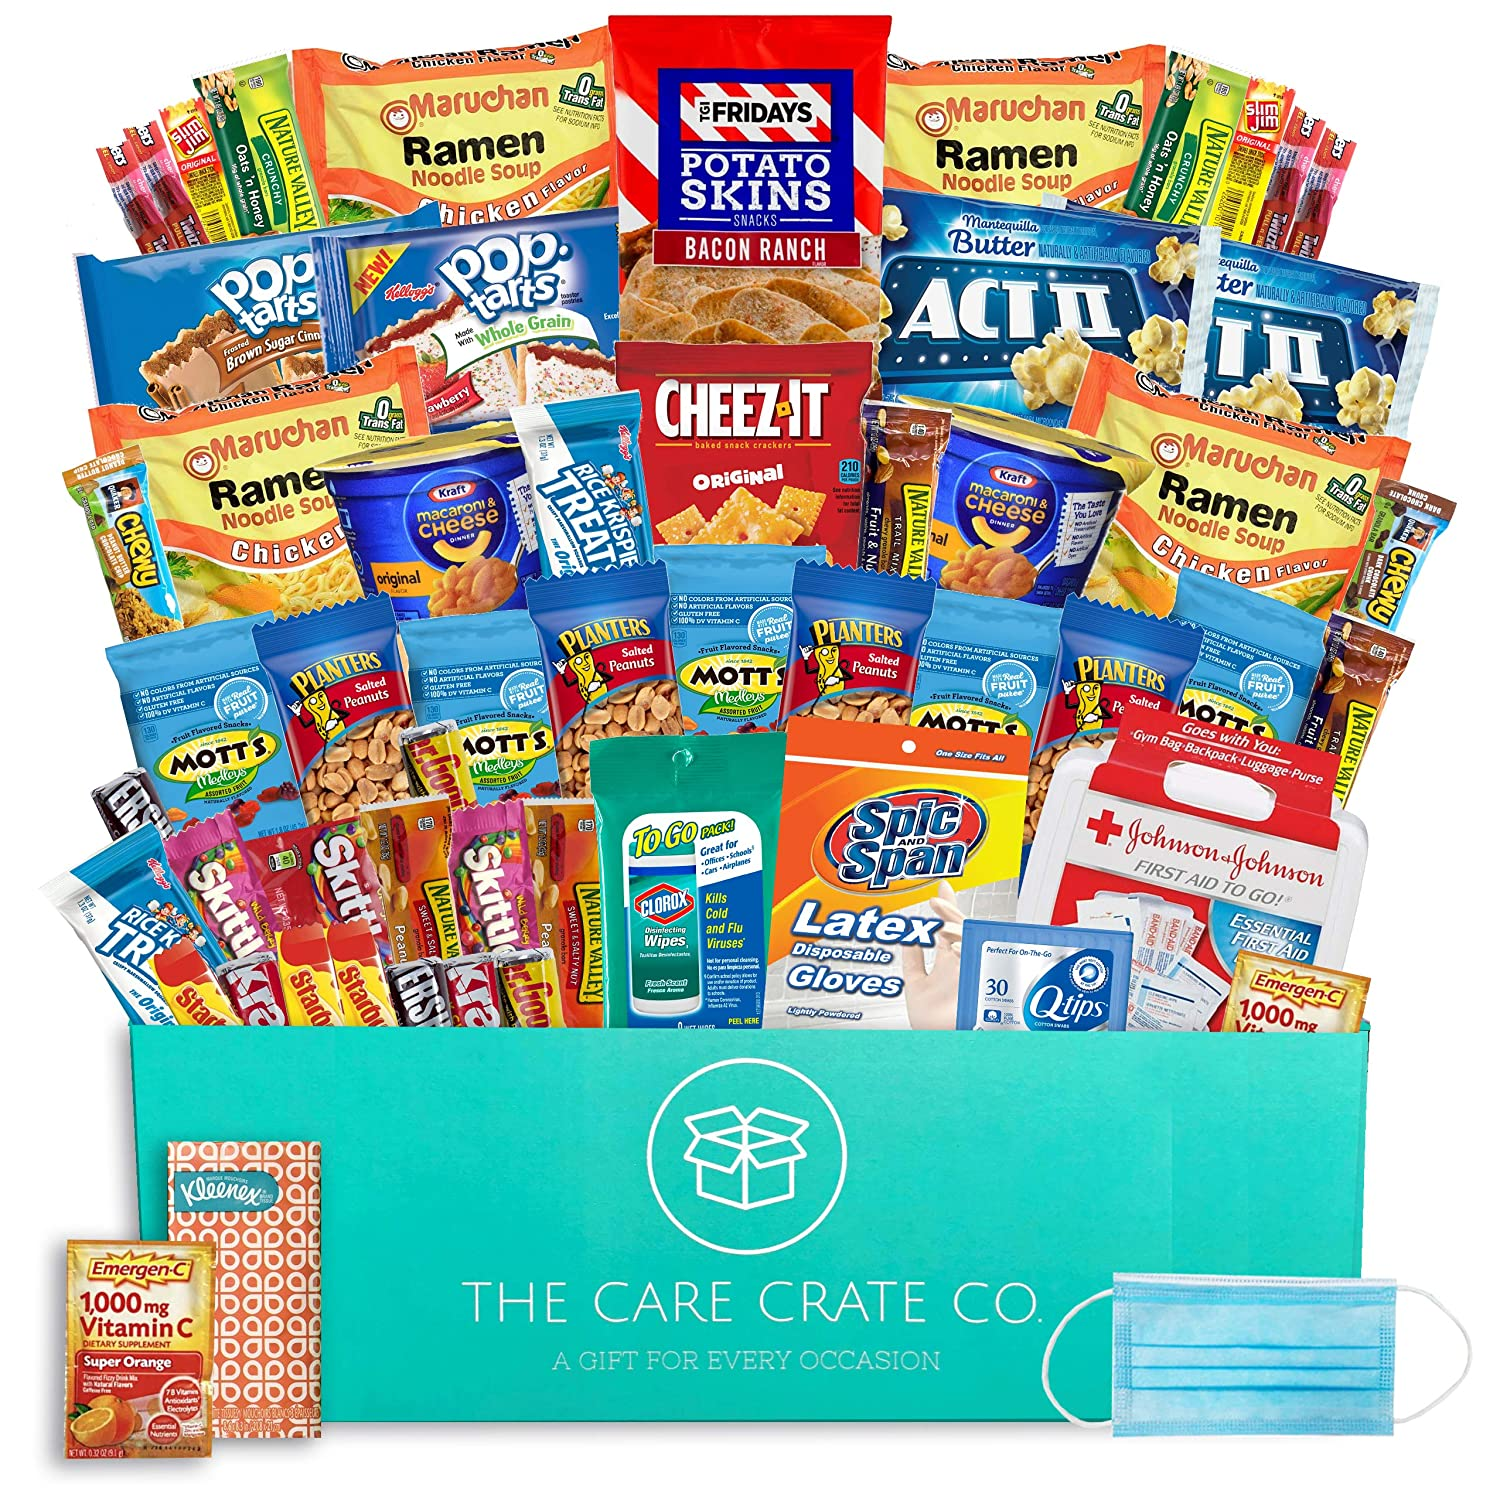 The Care Crate Personal Care Kit - 70 Piece Bulk Snacks, Microwaveable Meals And Personal Care Items Including Mac & Cheese Cups, Ramen Noodles, Nature Valley Bars, First Aid Kit, Qtips, Wipes & More